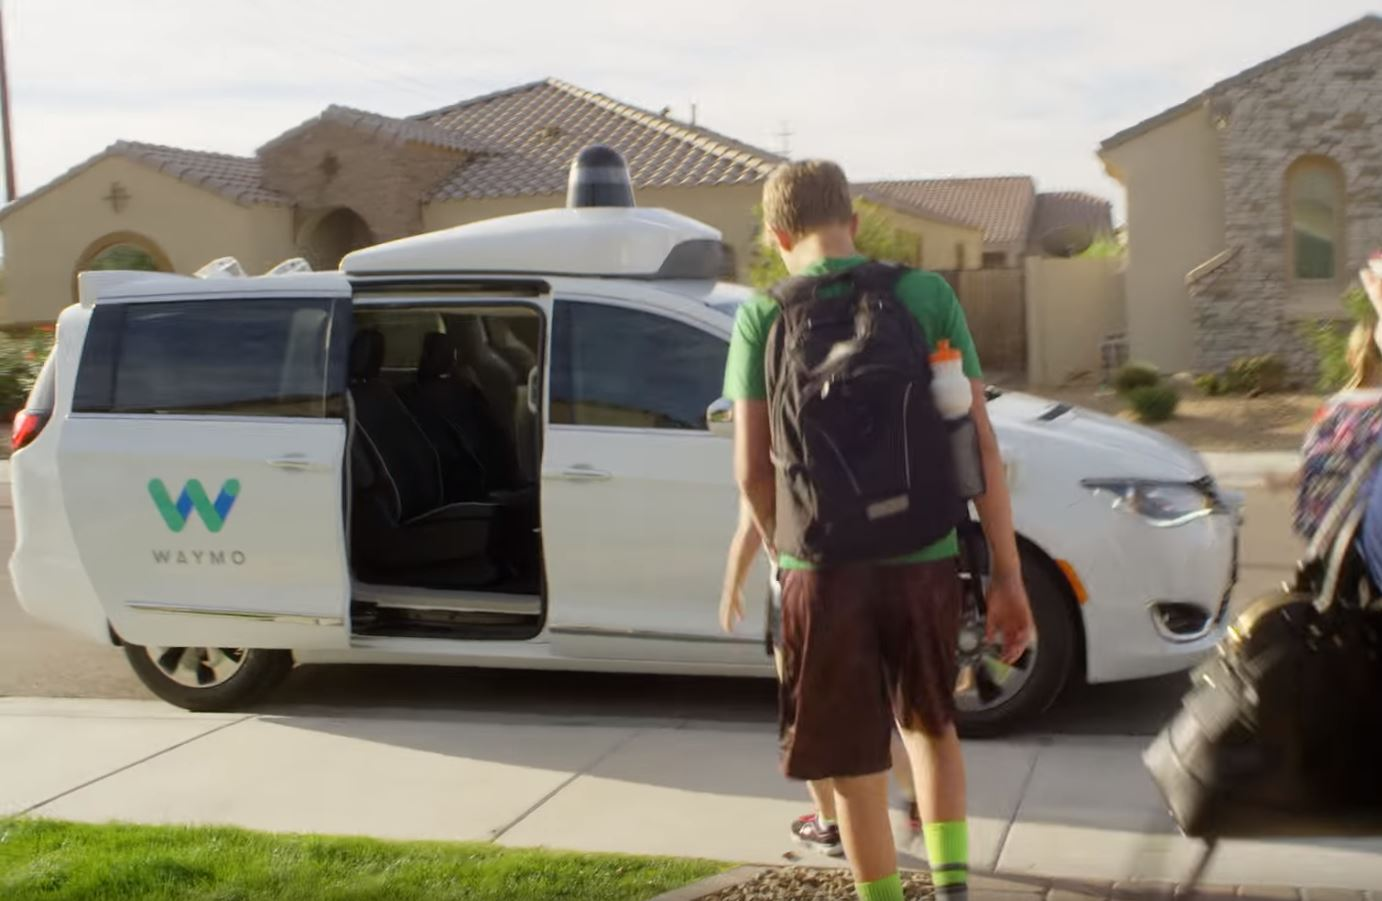 Google's Waymo has commenced self-driving taxi trials in Arizona.